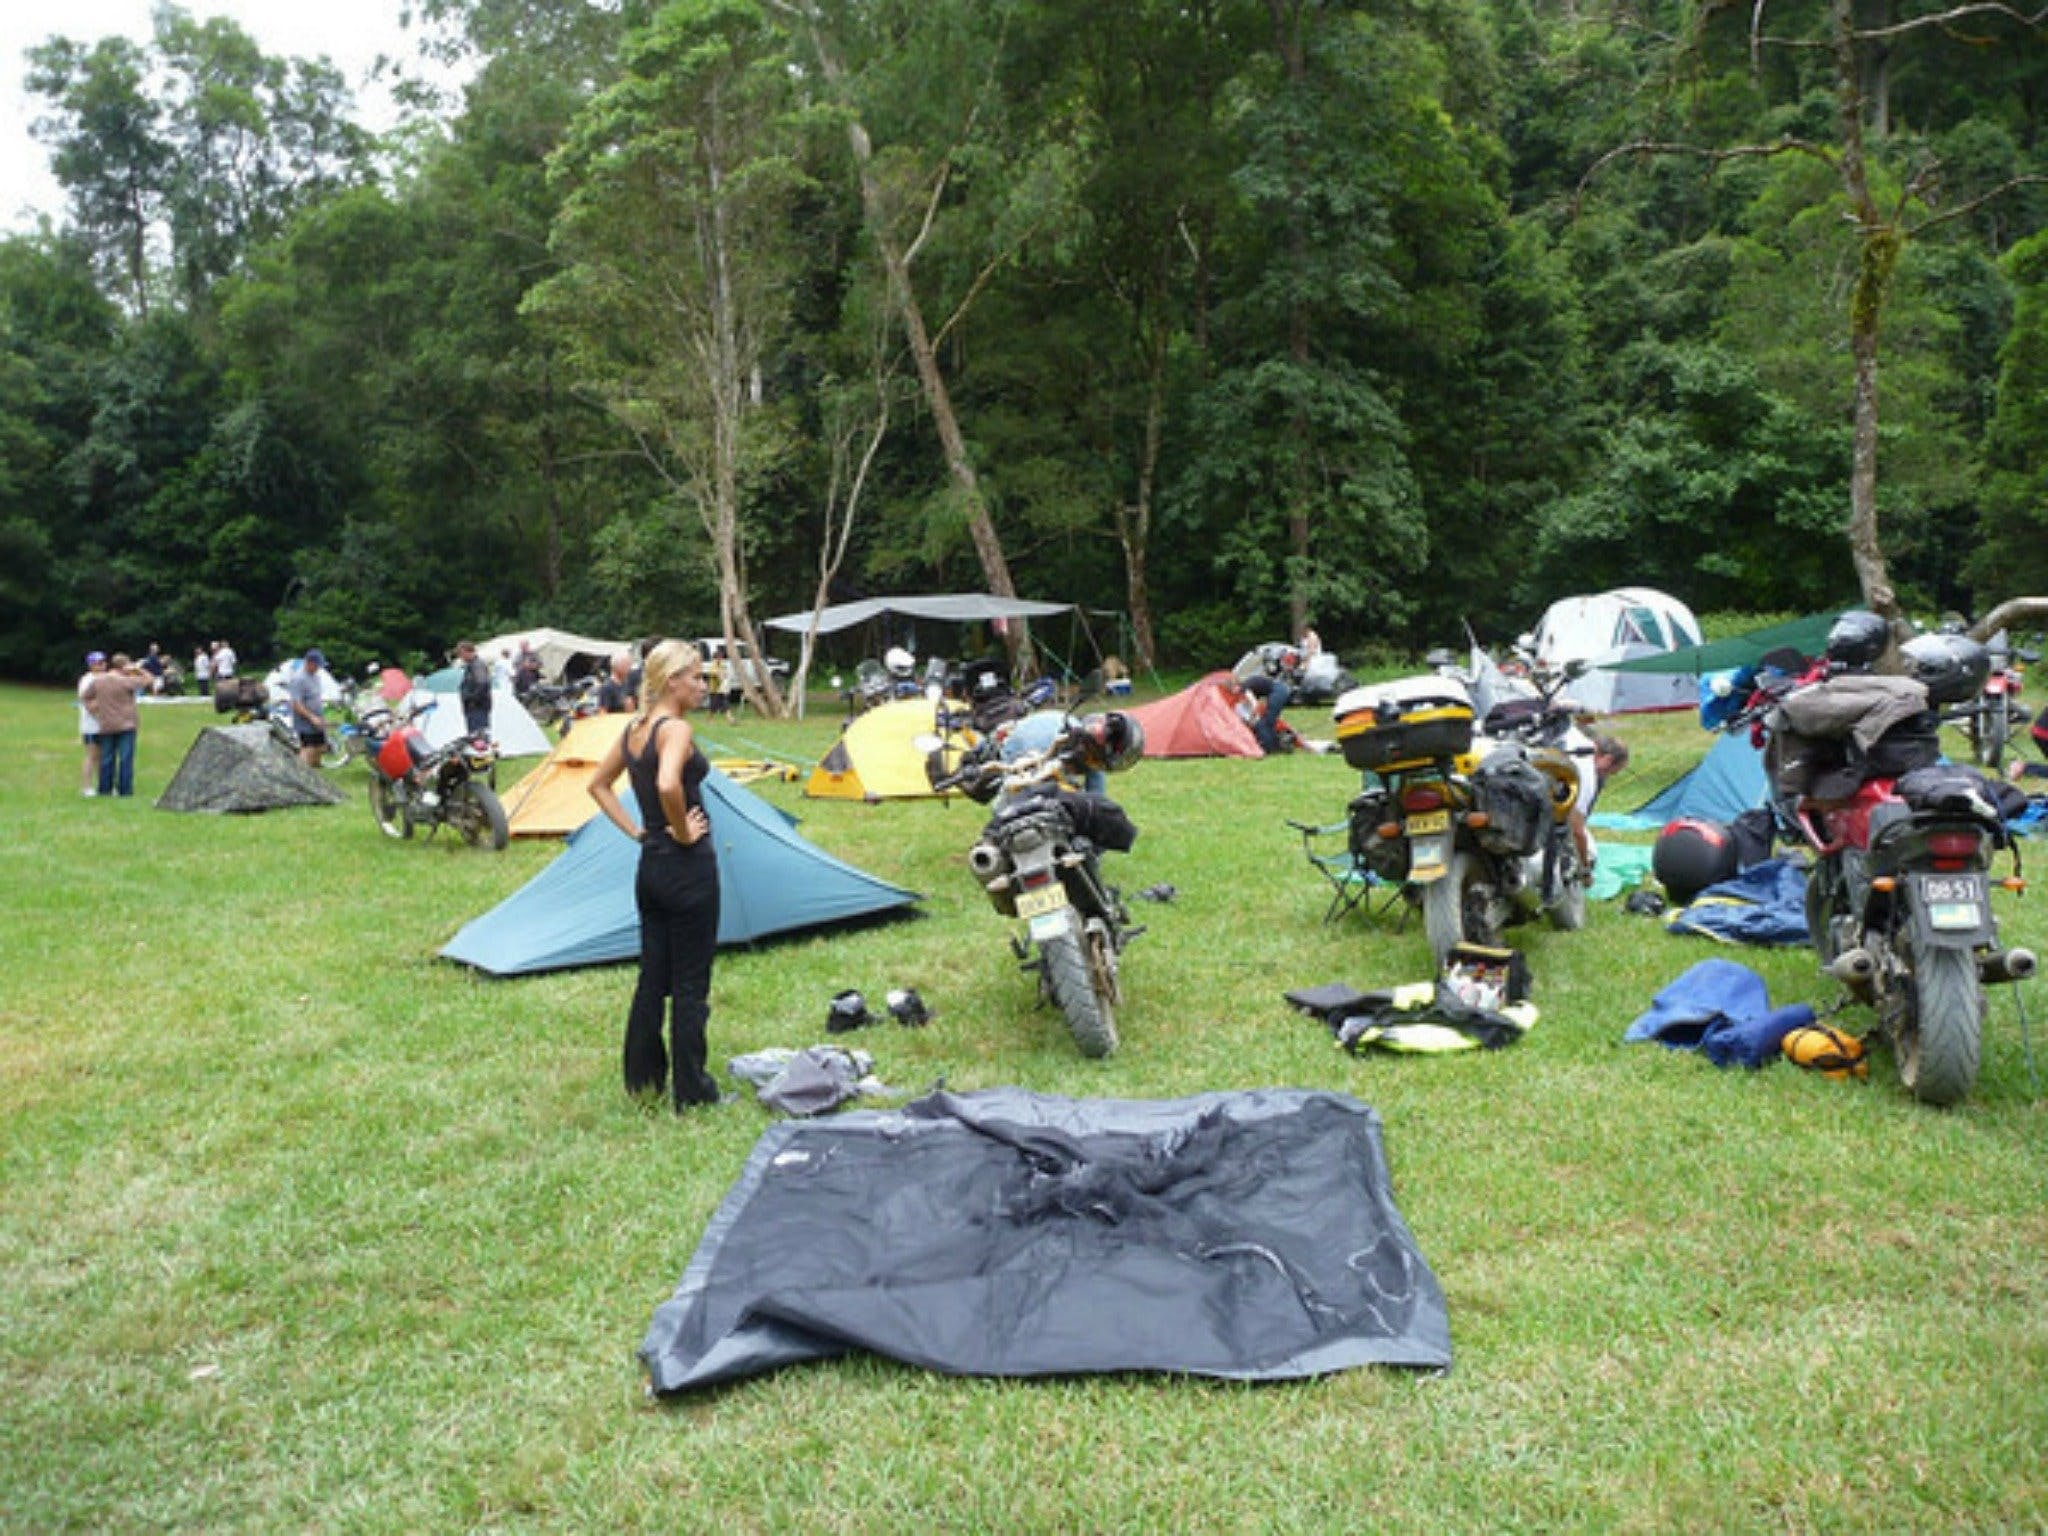 Karuah River Motorcycle Rally - Australia Accommodation